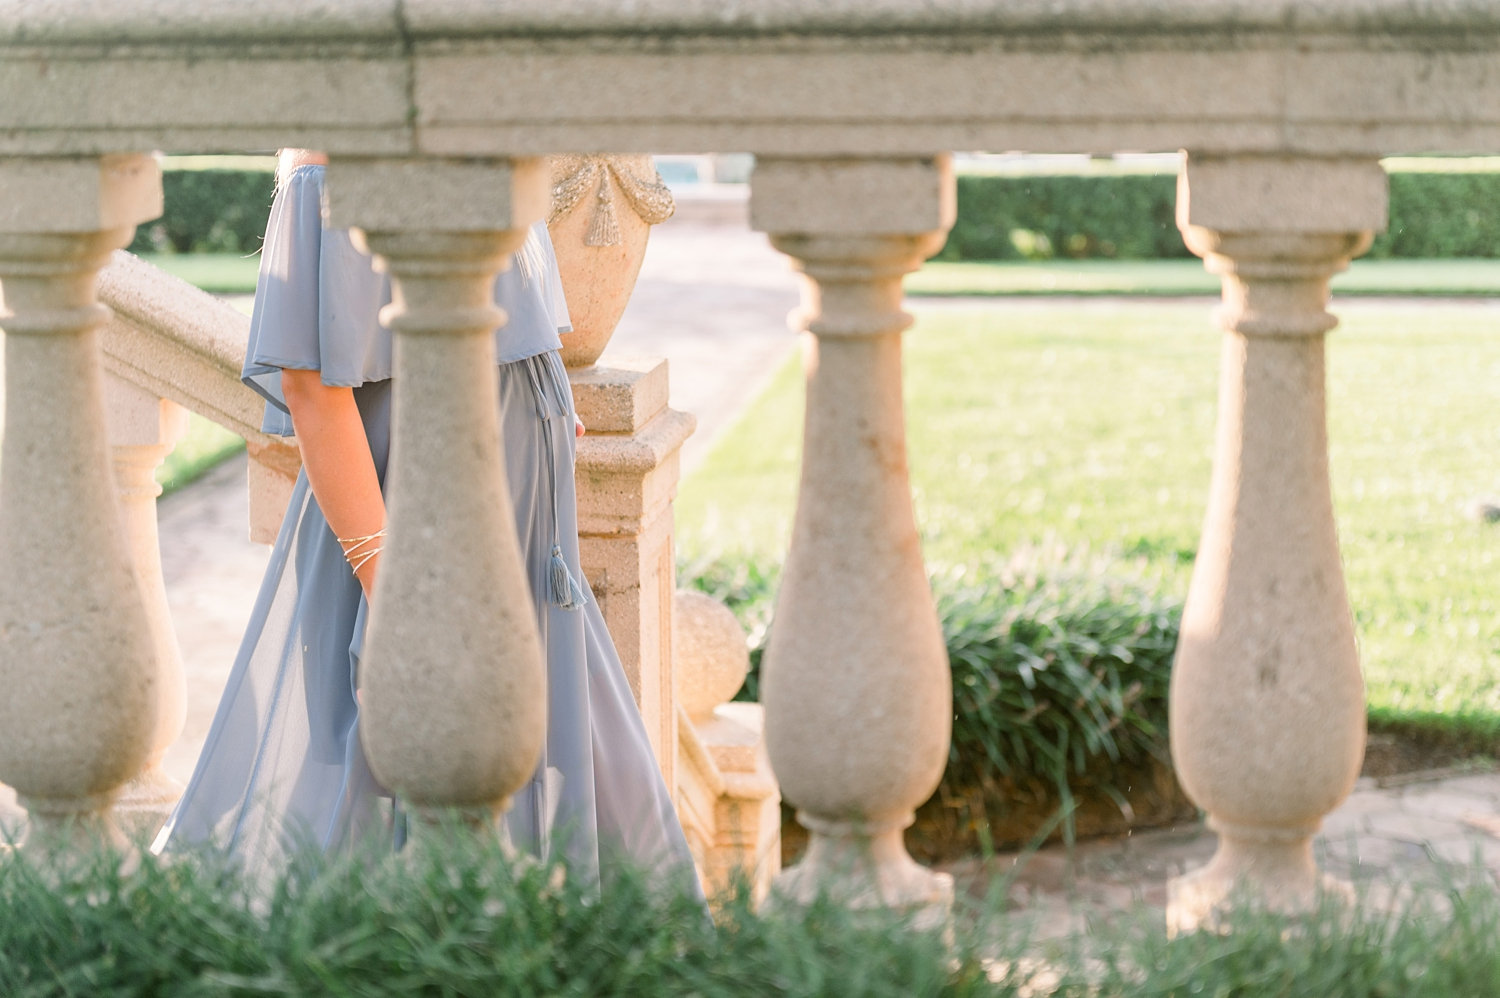 peek at a walking pregnant woman through stone architectural columns in a manicured garden